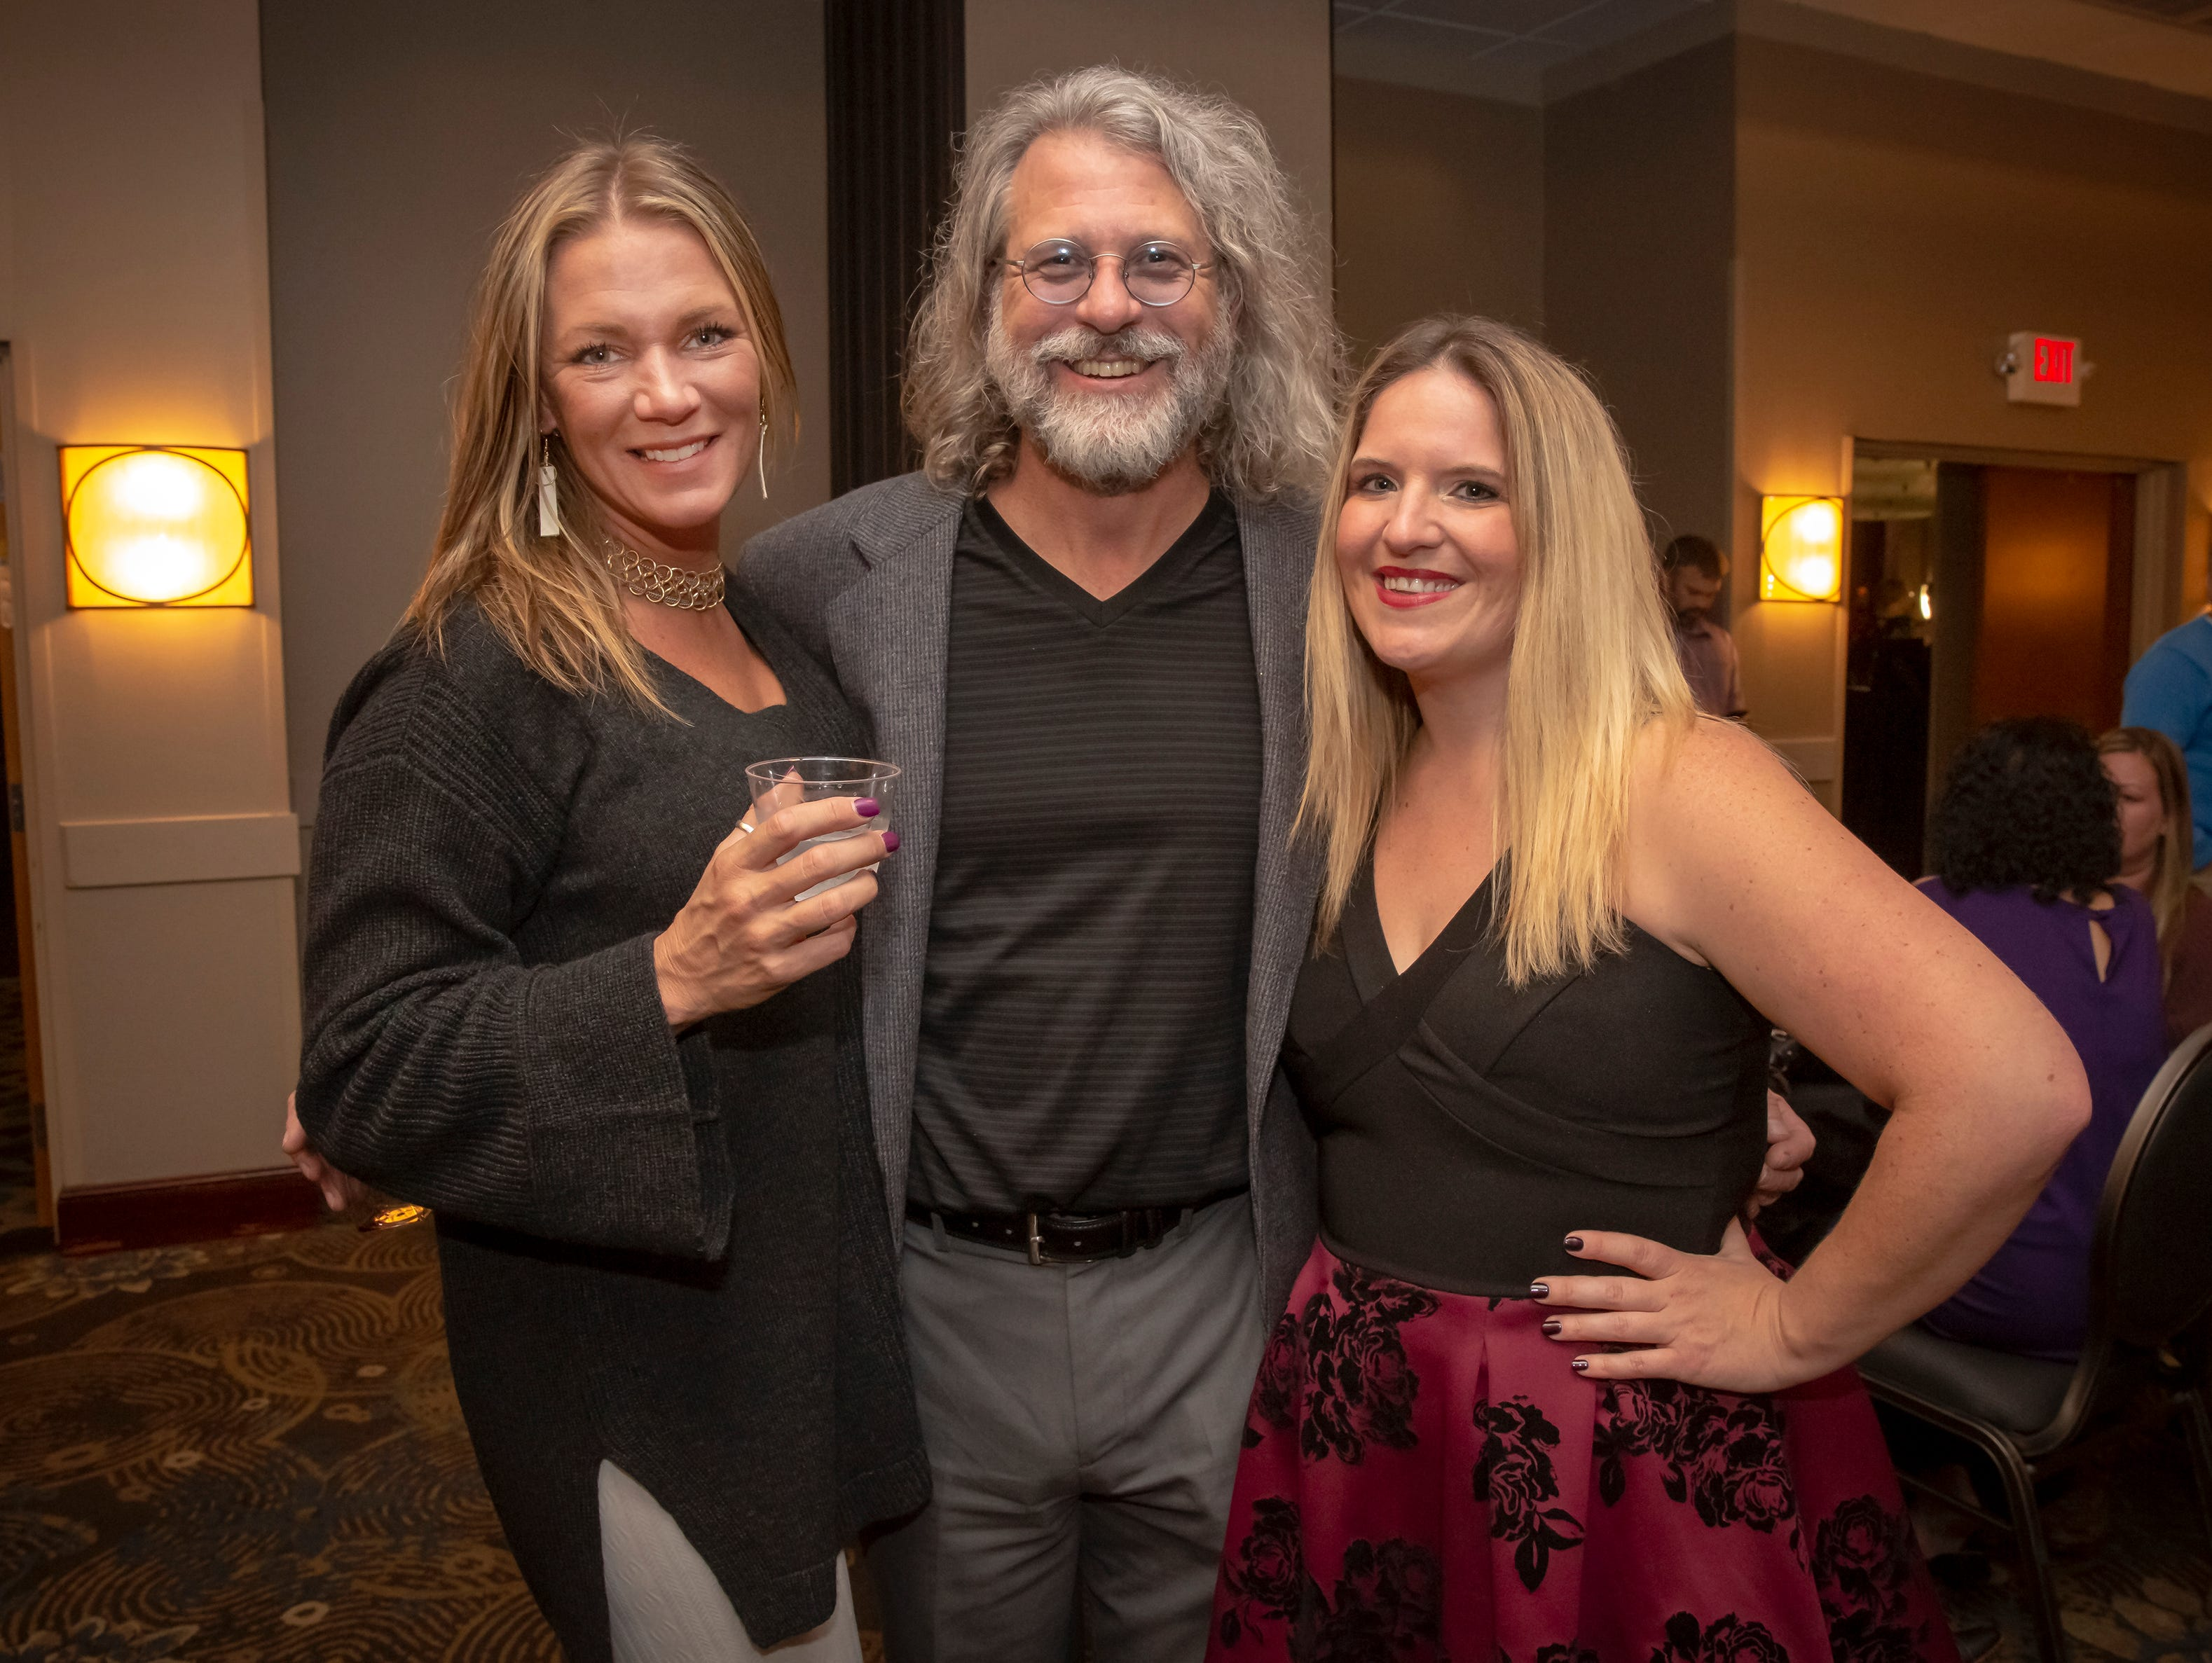 Kristen Ray, Ozzy Nelson and Ariana Vanderburgh at the 24th annual Ruthie awards held at DoubleTree on Old Fort Parkway.